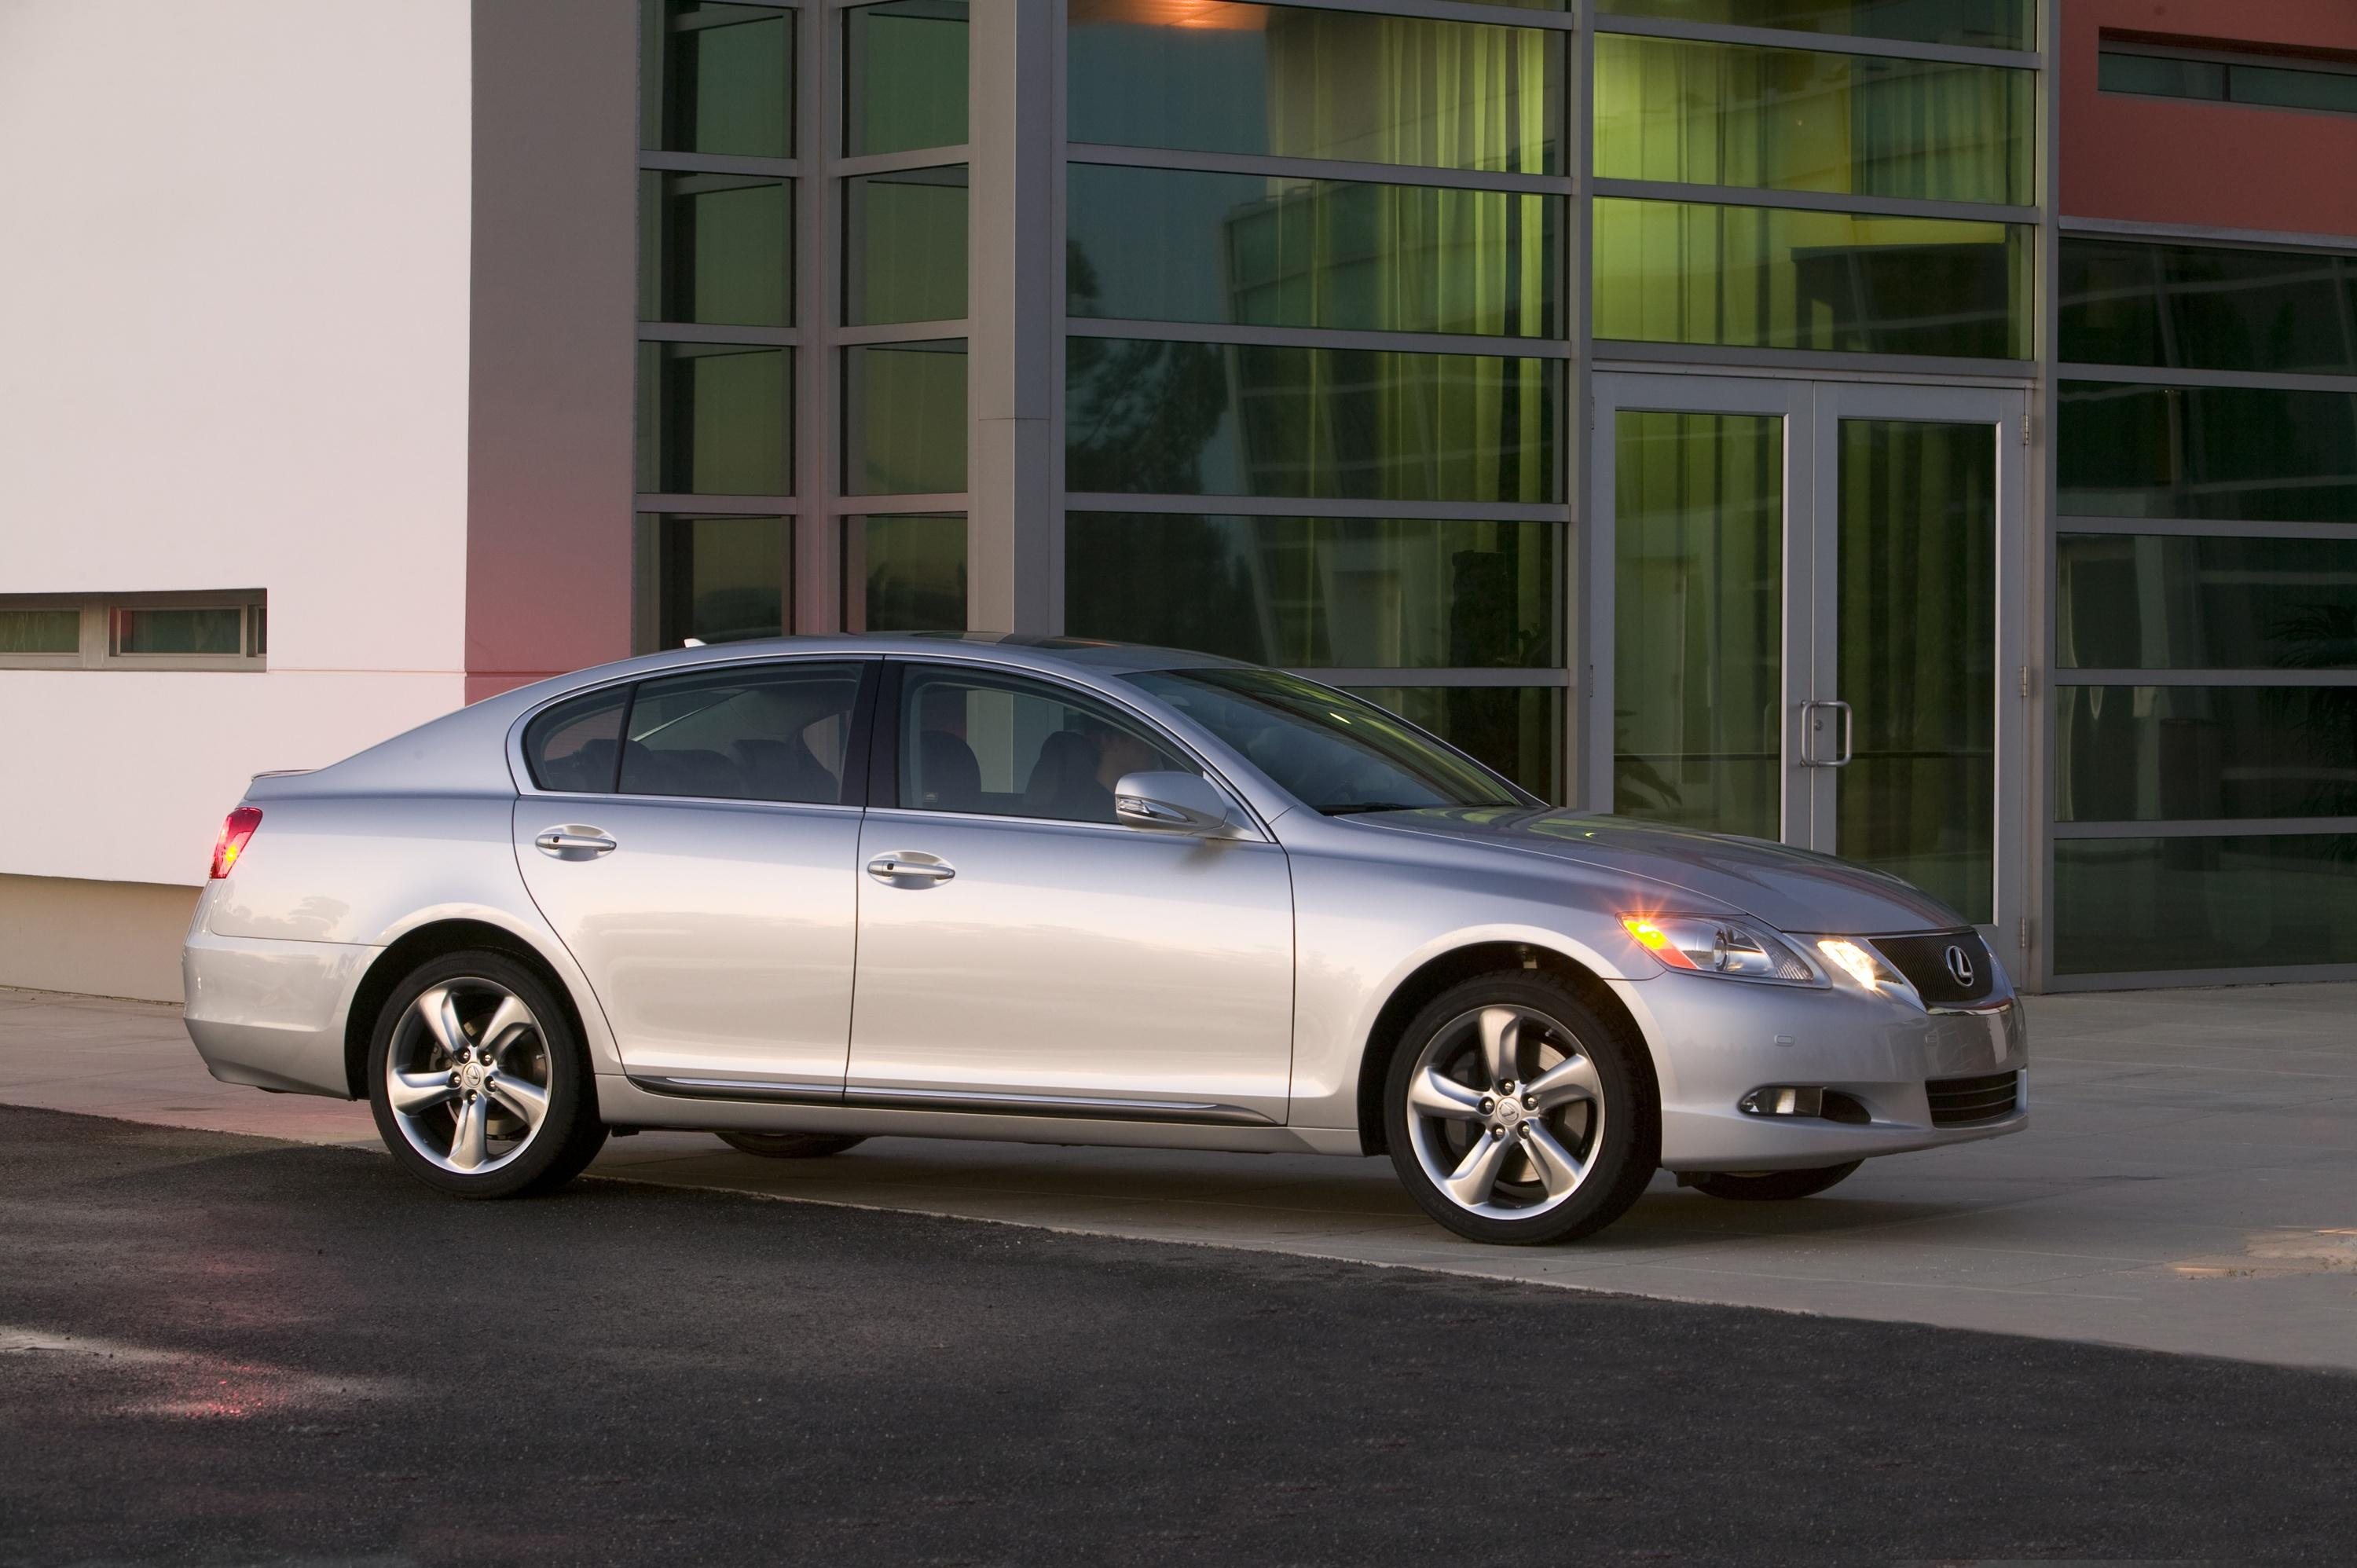 Lexus has introduced the newest version of its gs luxury sport sedan range for 2008 the gs 460 with a new 342 horsepower 4 6 liter v8 and eight speed